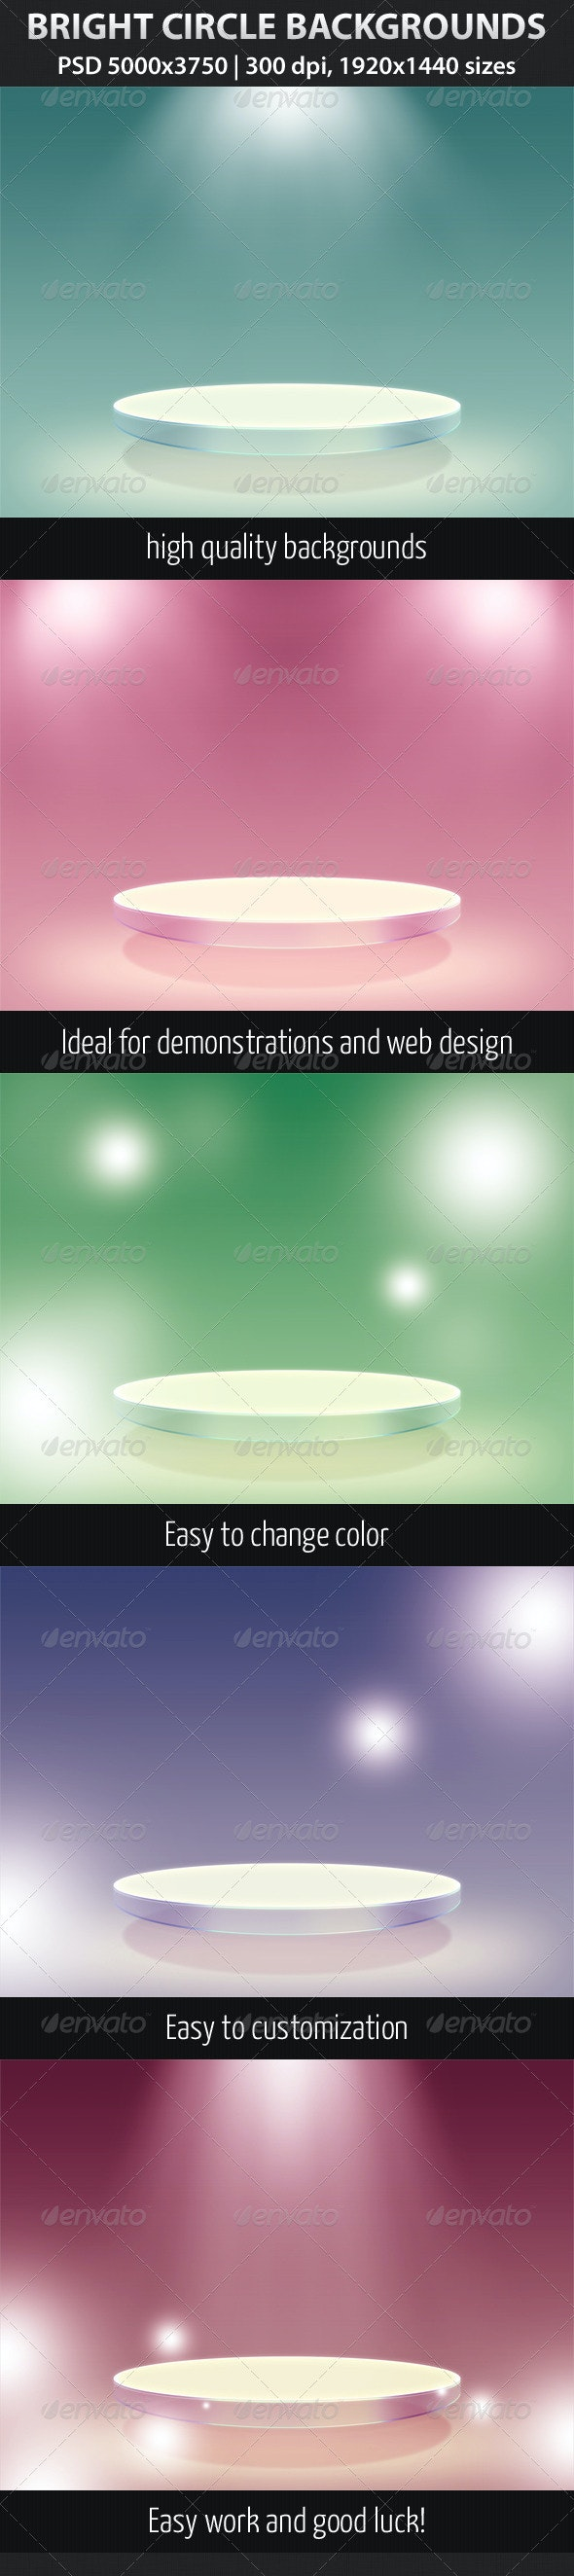 Bright Circle Backgrounds - 3D Backgrounds